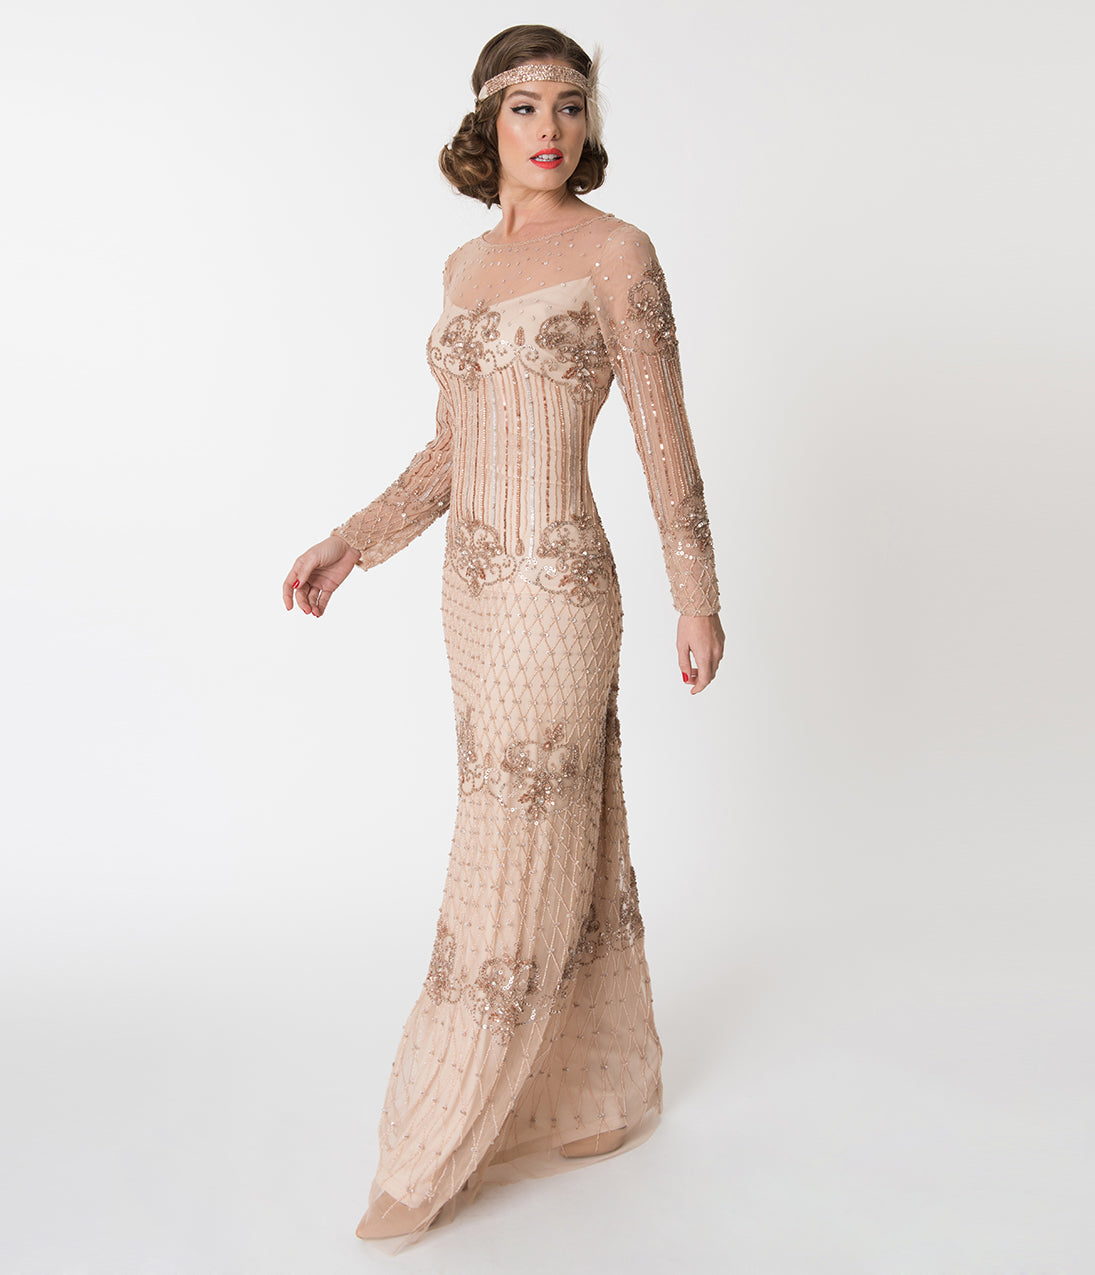 1920s Style Dresses, Flapper Dresses Blush Pink Embellished Mesh Long Sleeve Dolores Flapper Dress $218.00 AT vintagedancer.com